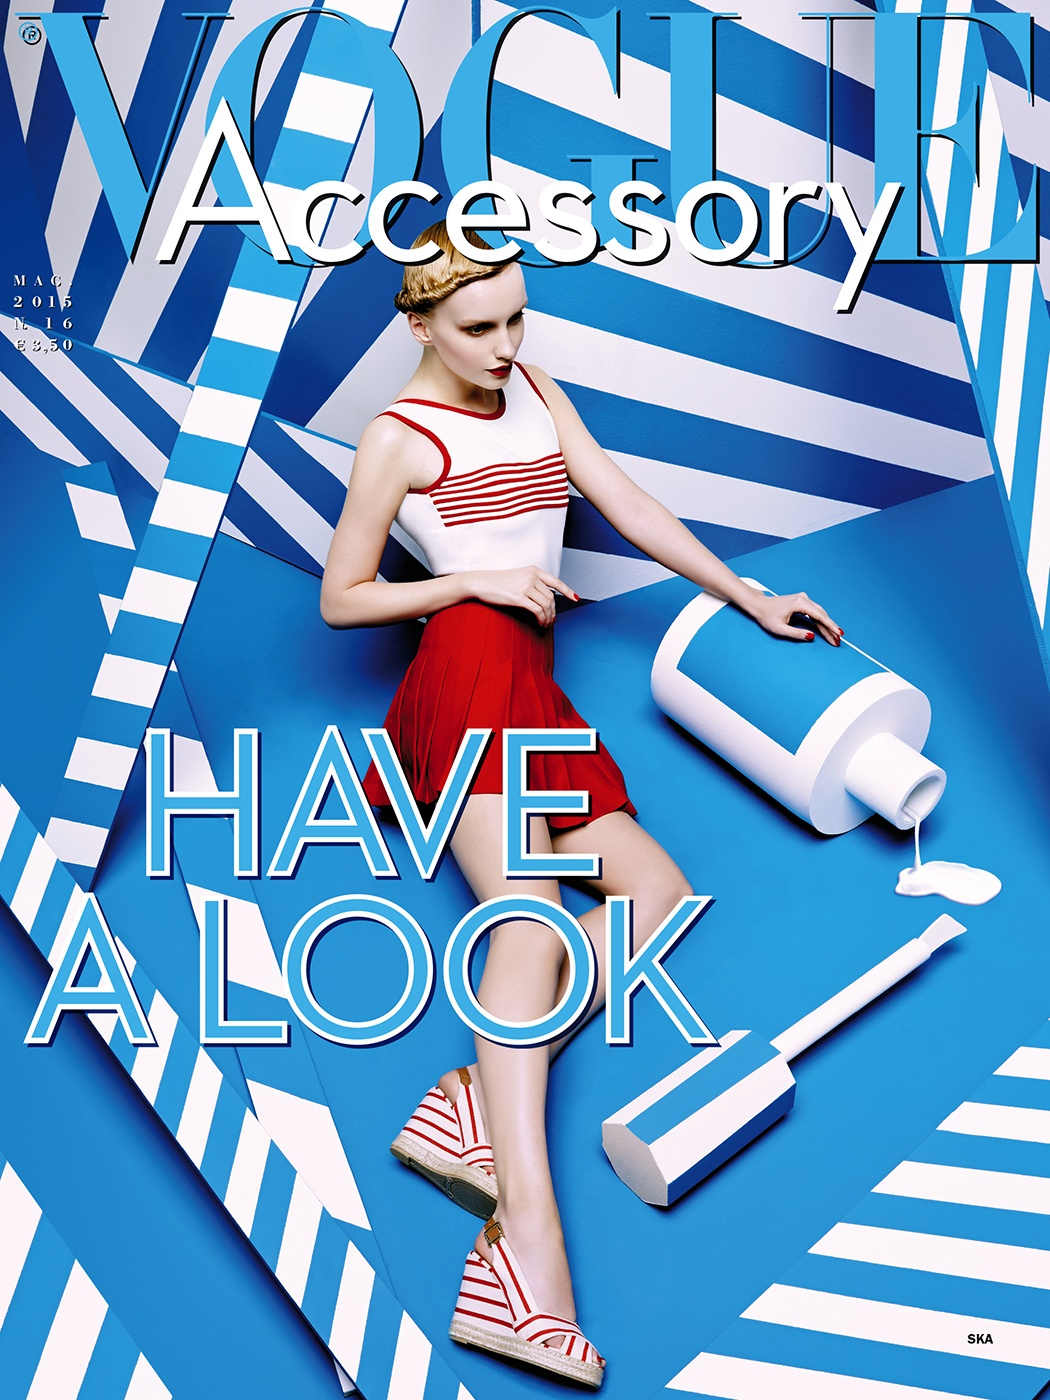 Vogue Accessory Cover SKA editorial conde nast